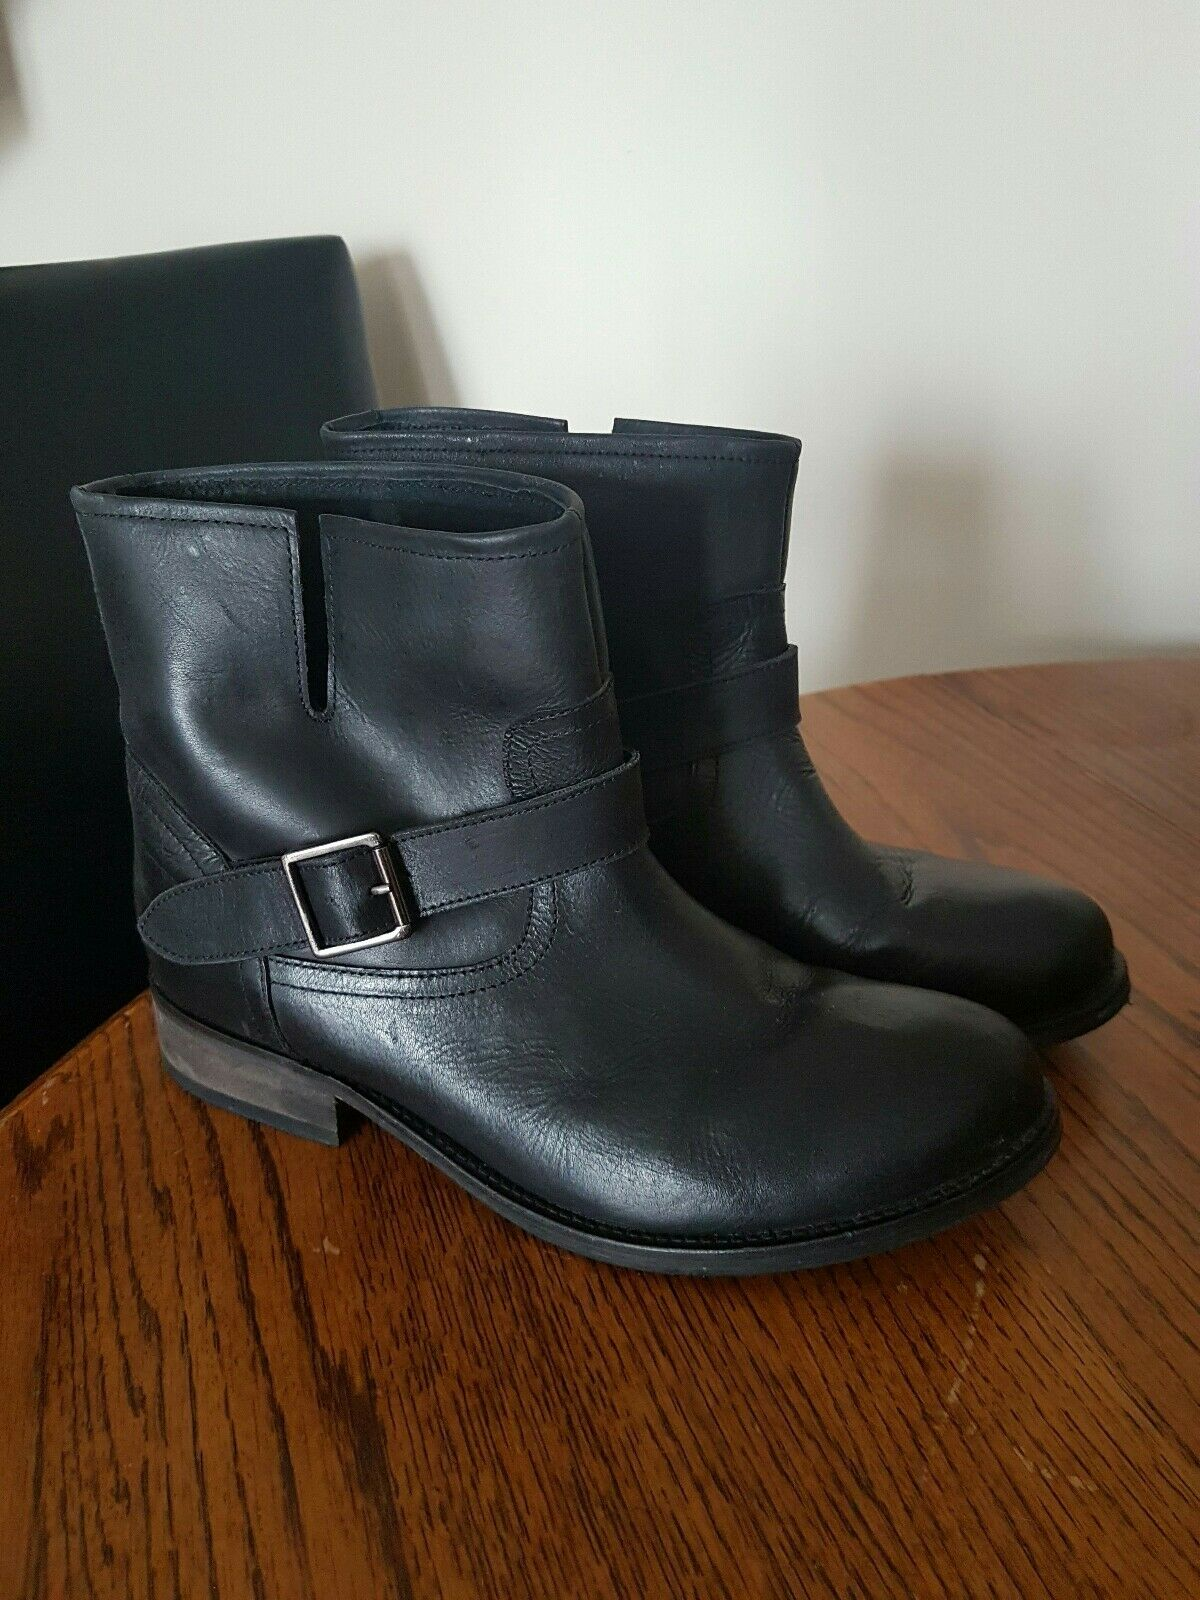 OFFICE Ladies Black Leather Ankle Boots With Buckle Size UK 7